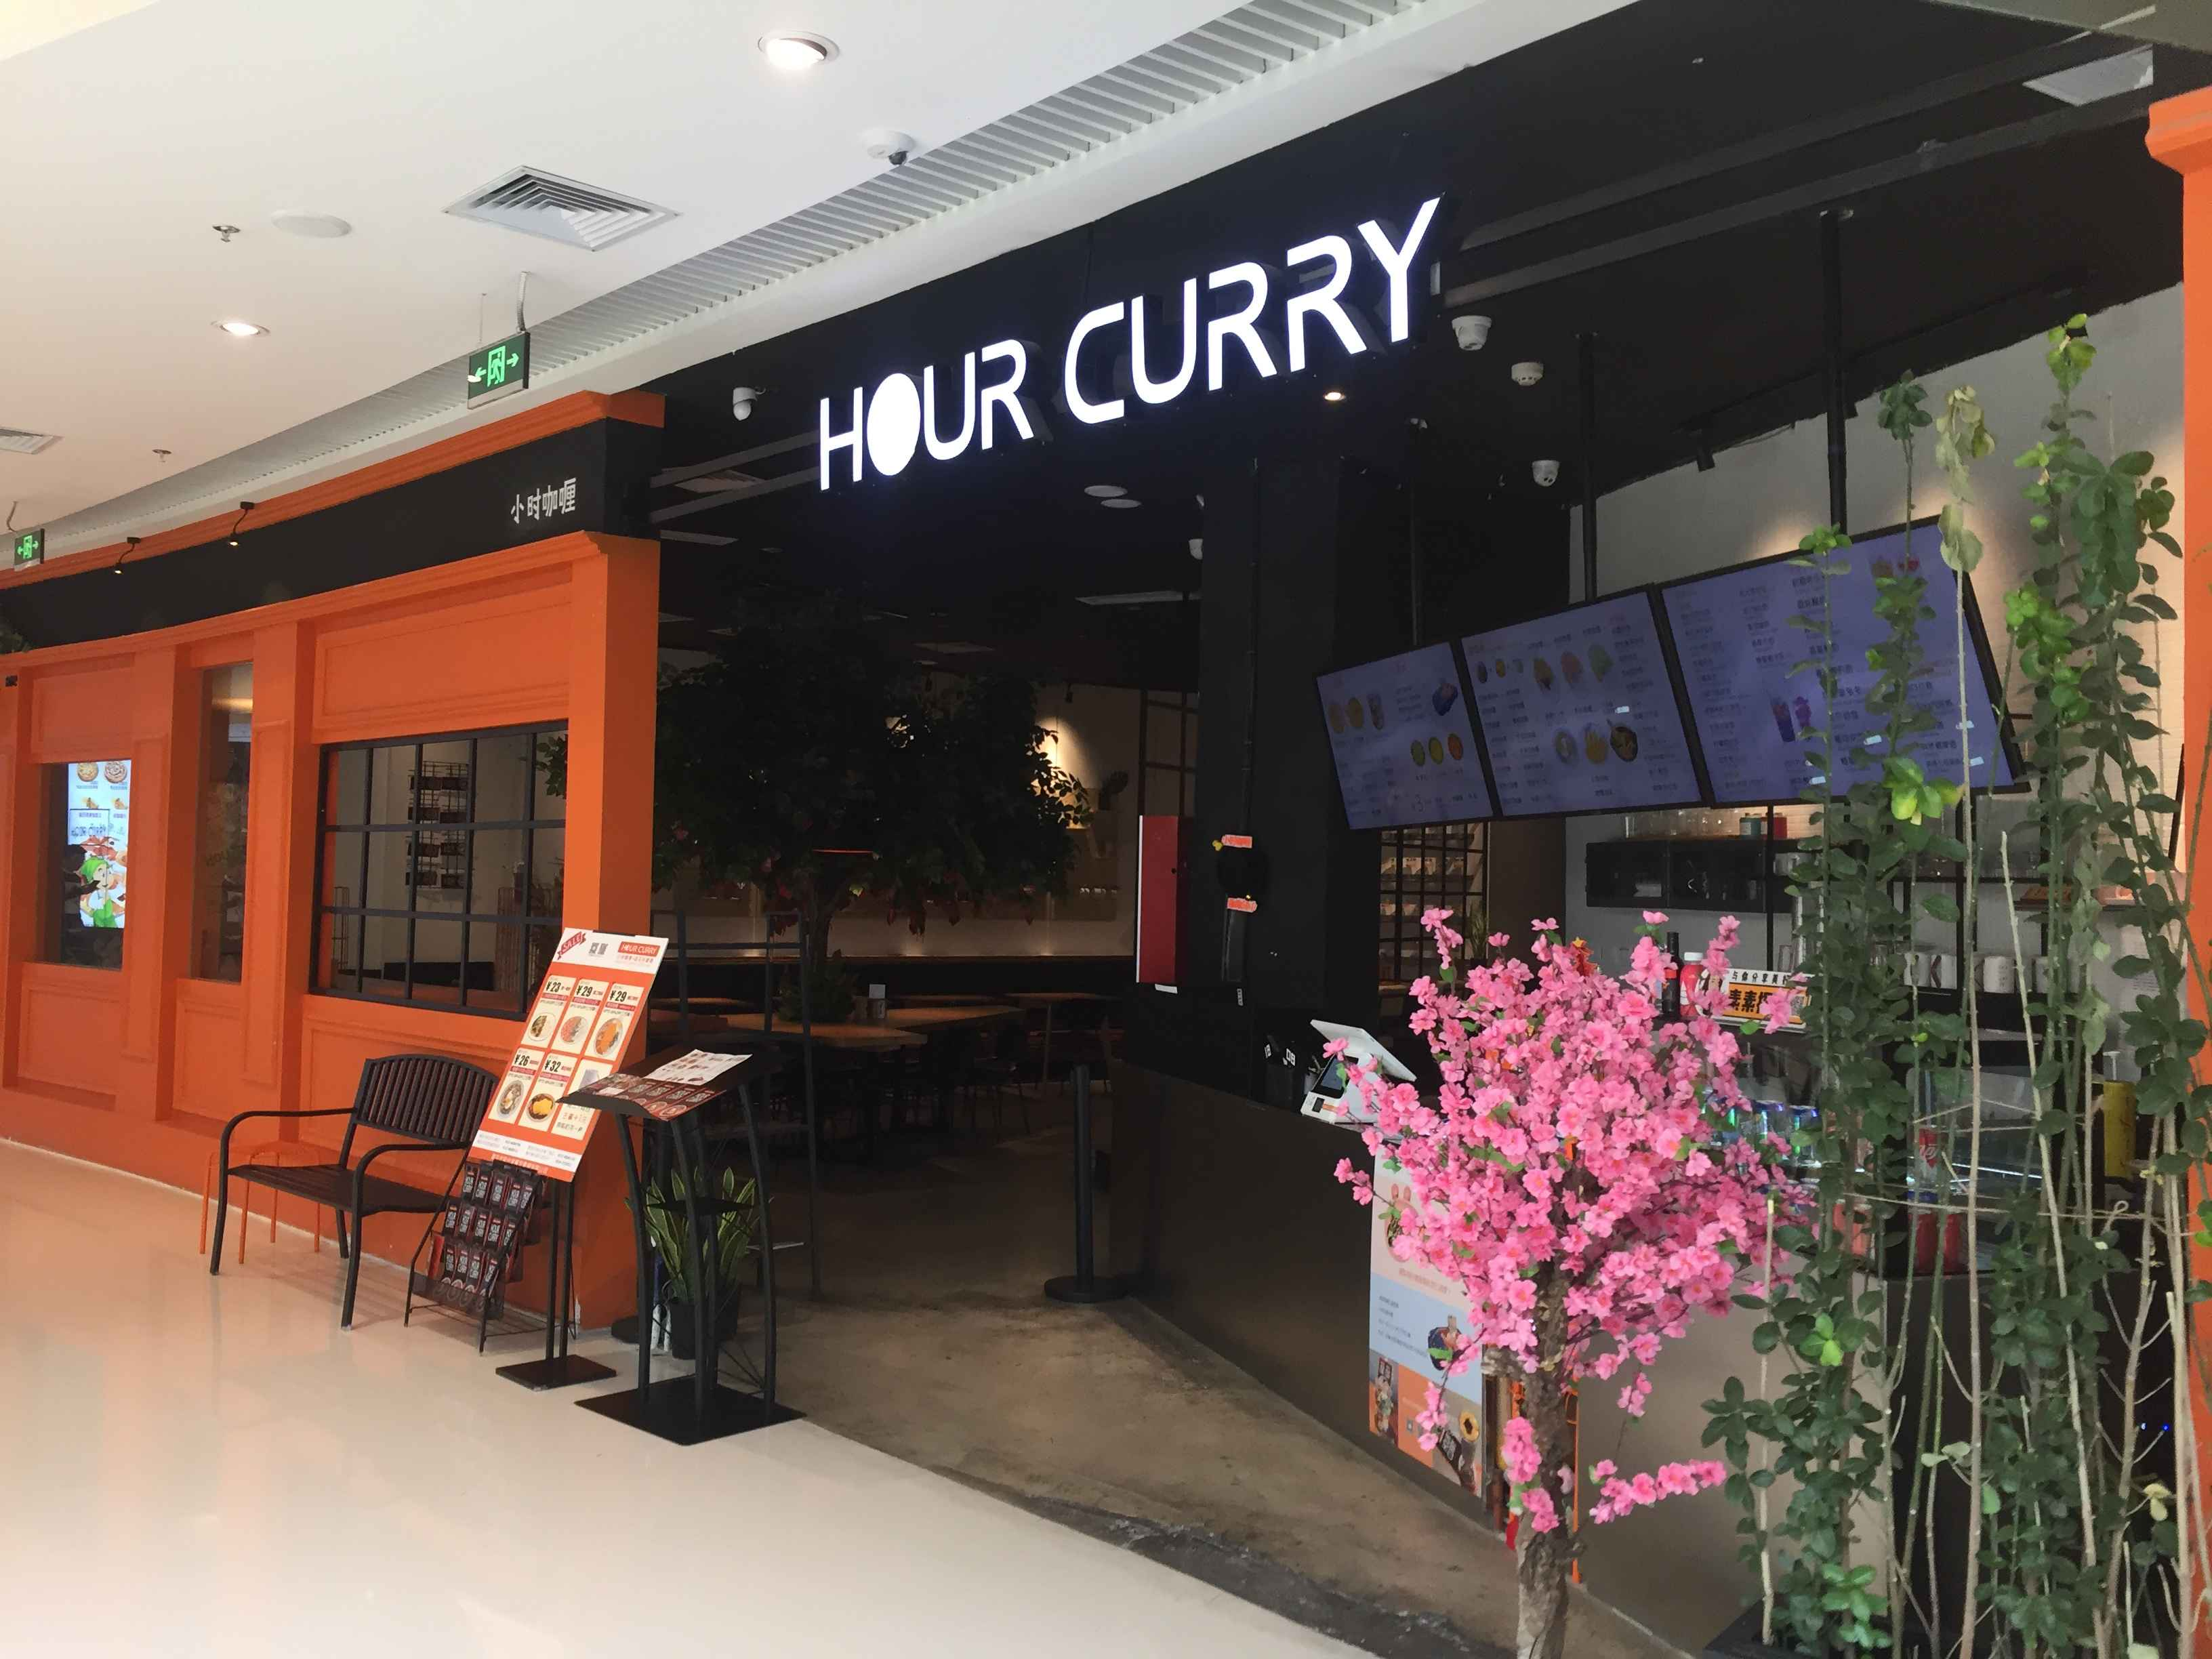 hour curry